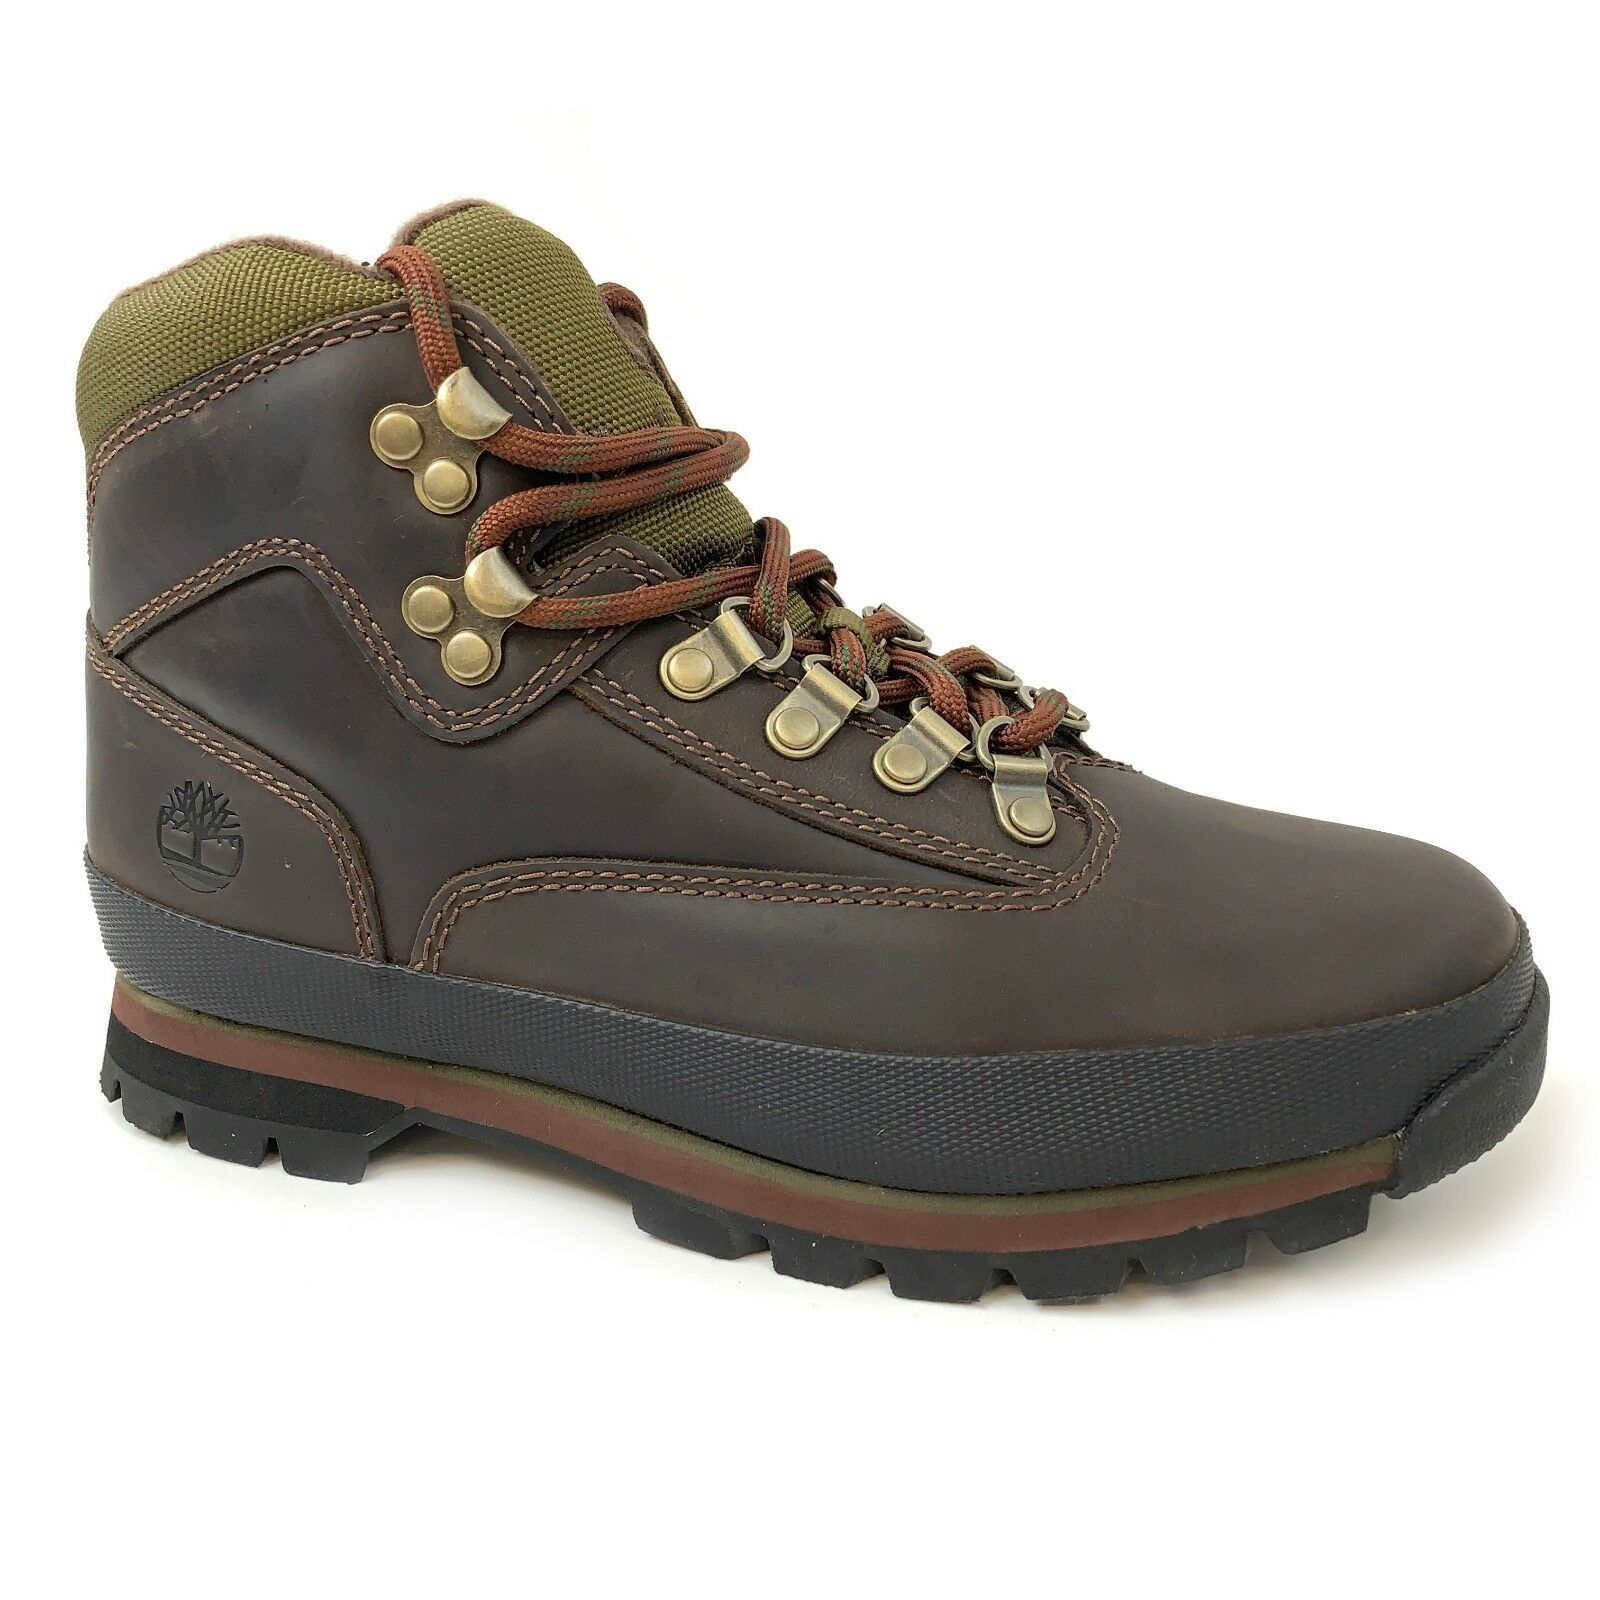 Timberland Women's Euro Hiker Brown Leather Hiking Boots 8364B - $79.99